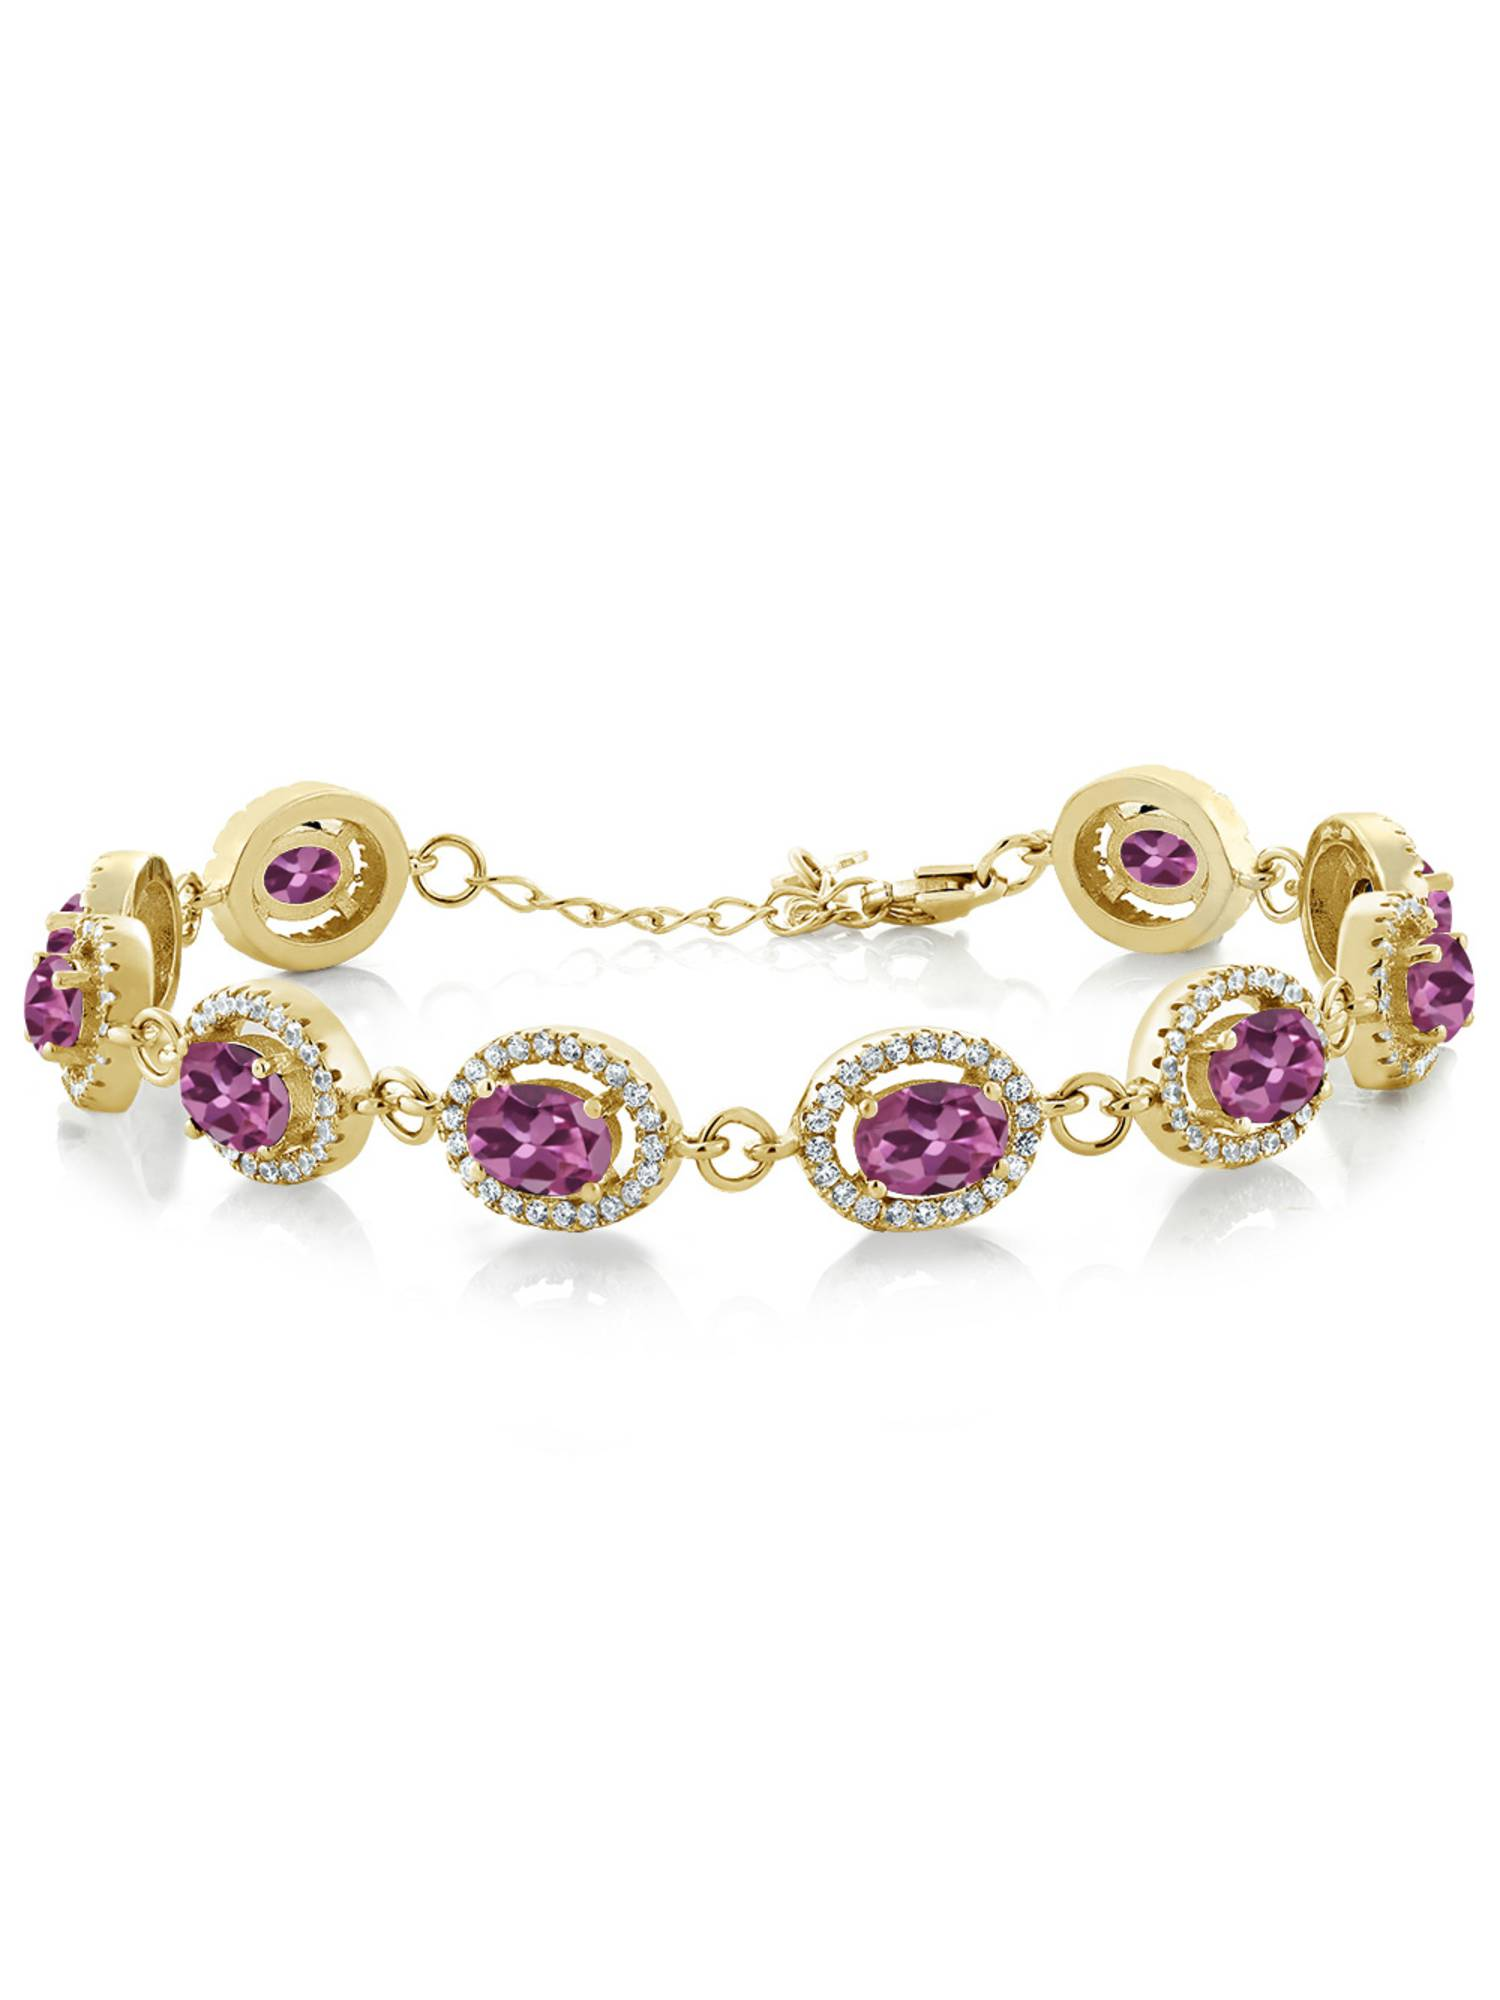 11.38 Ct Oval Pink Tourmaline 18K Yellow Gold Plated Silver Bracelet by